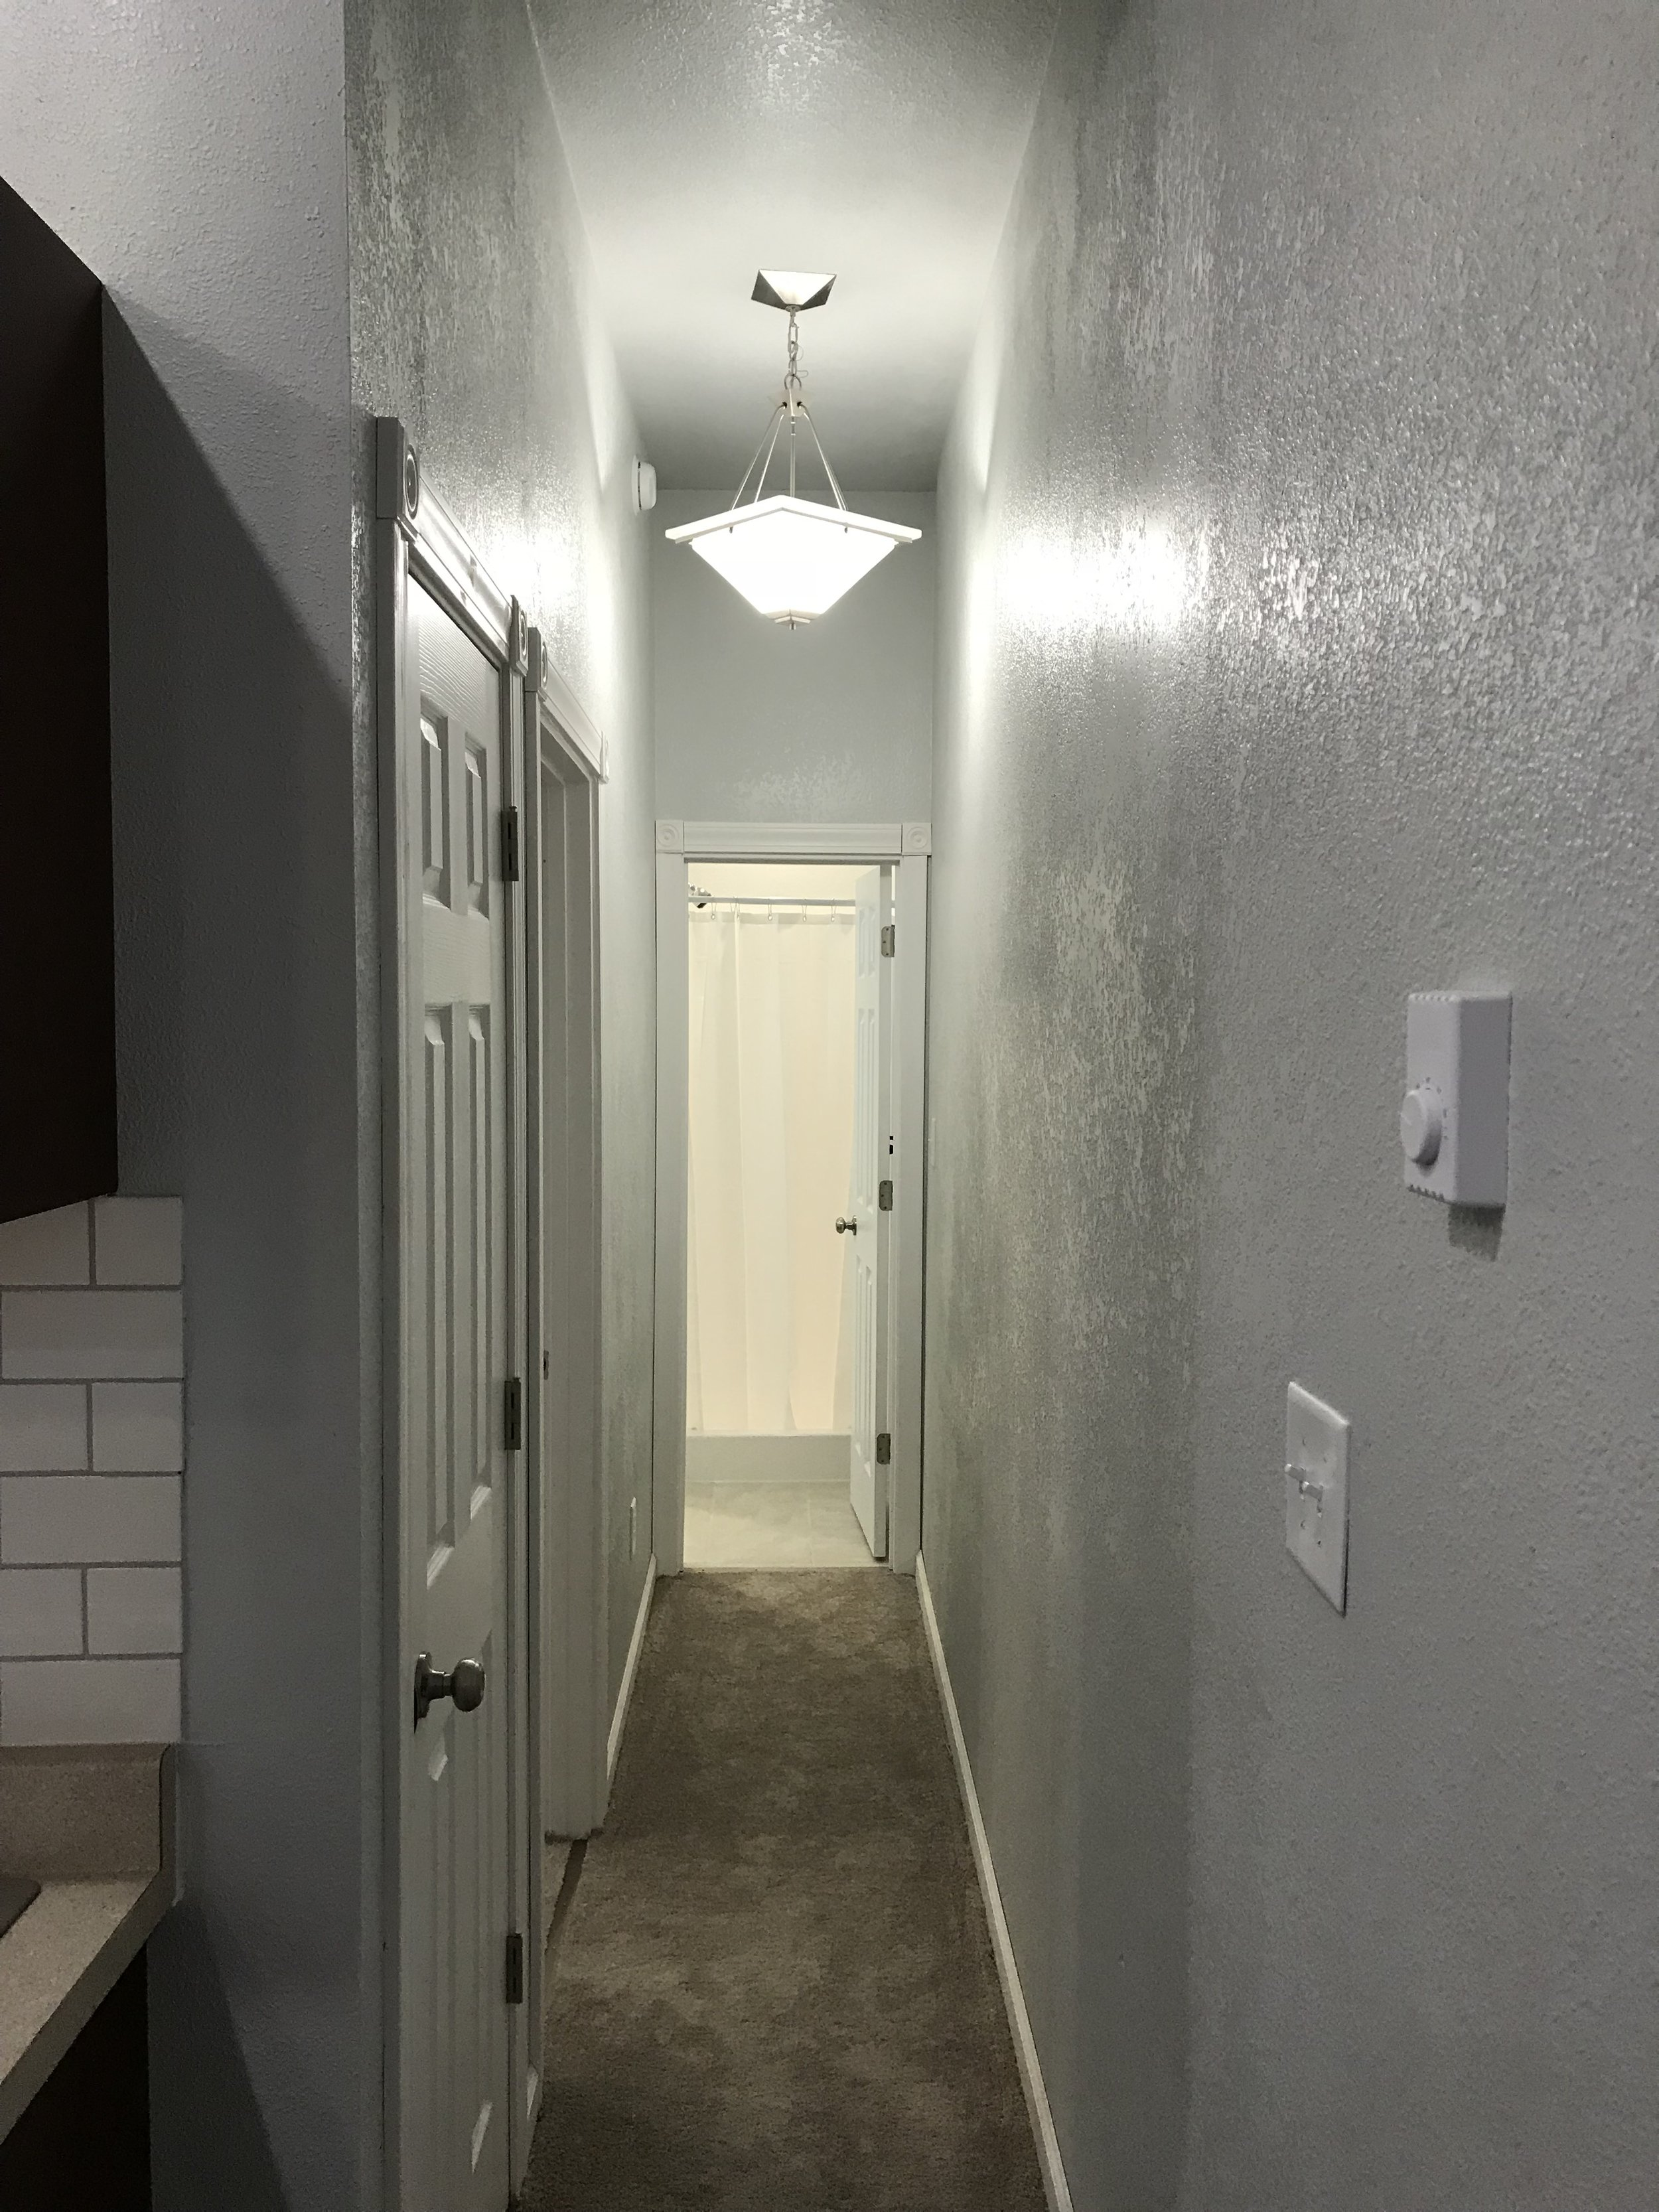 Hall to Bed/Bath